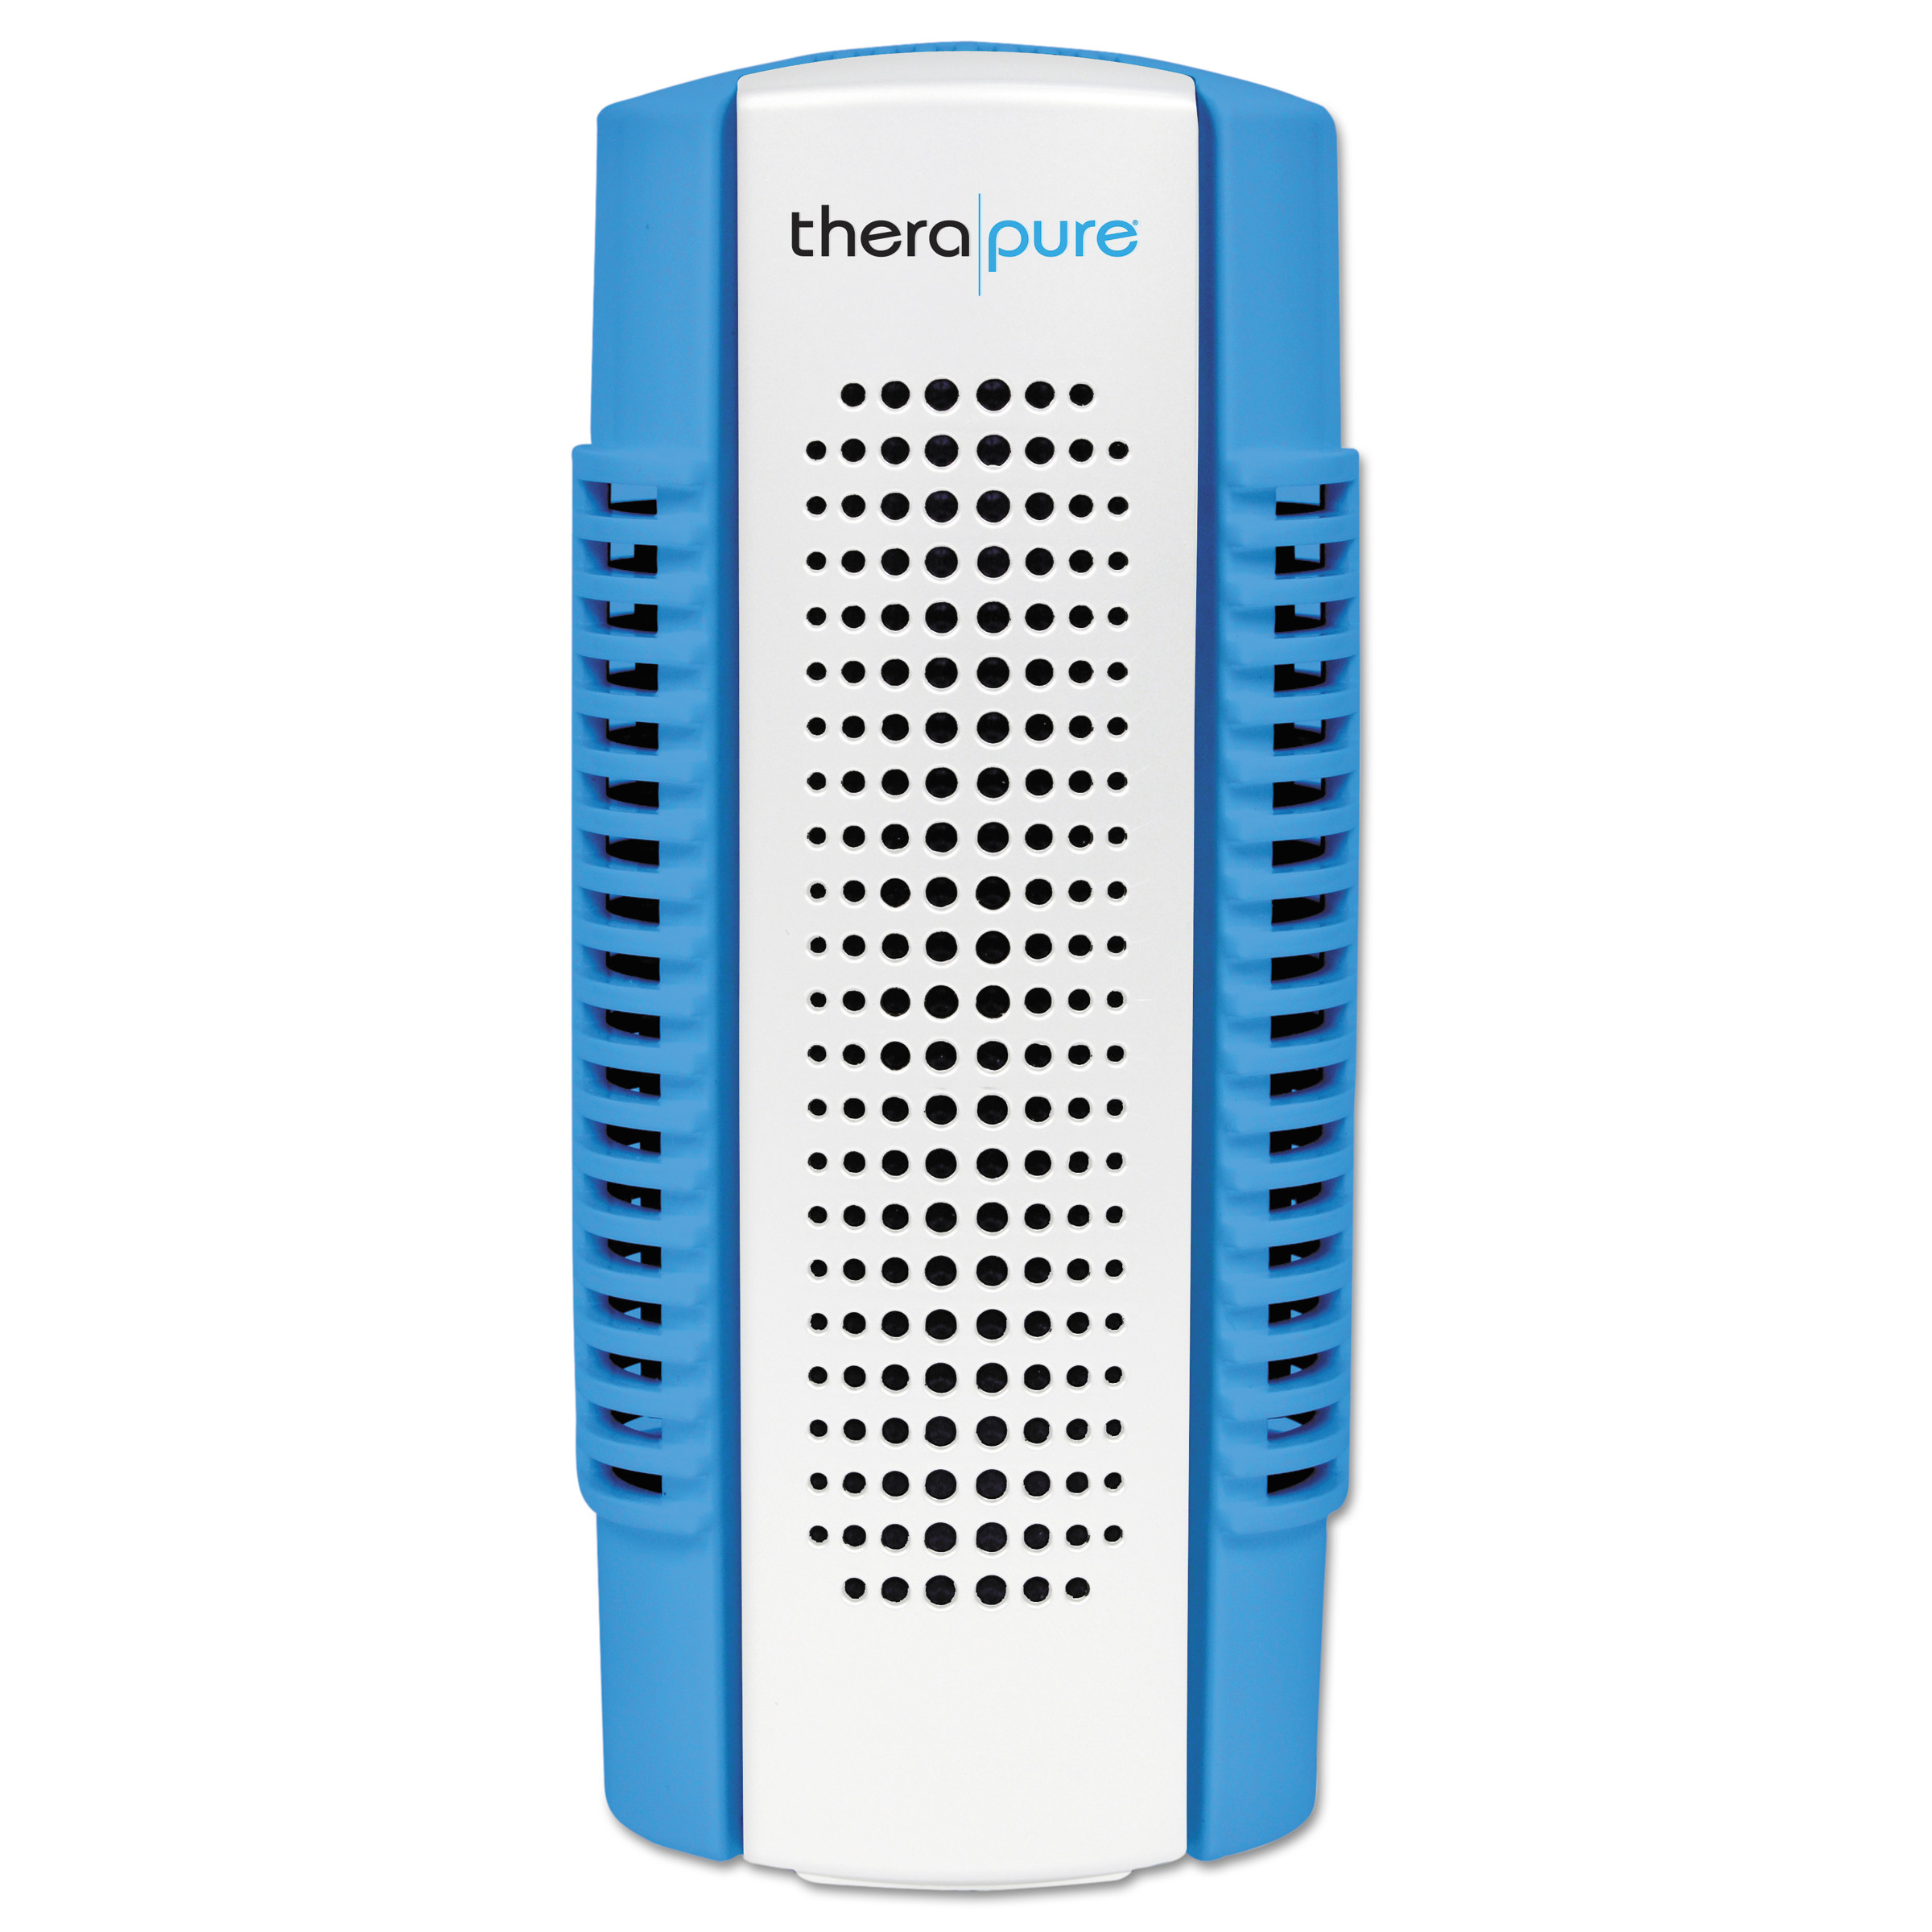 Envion Therapure Mini Plug-In Air Purifier, UV Germicidal, Blue